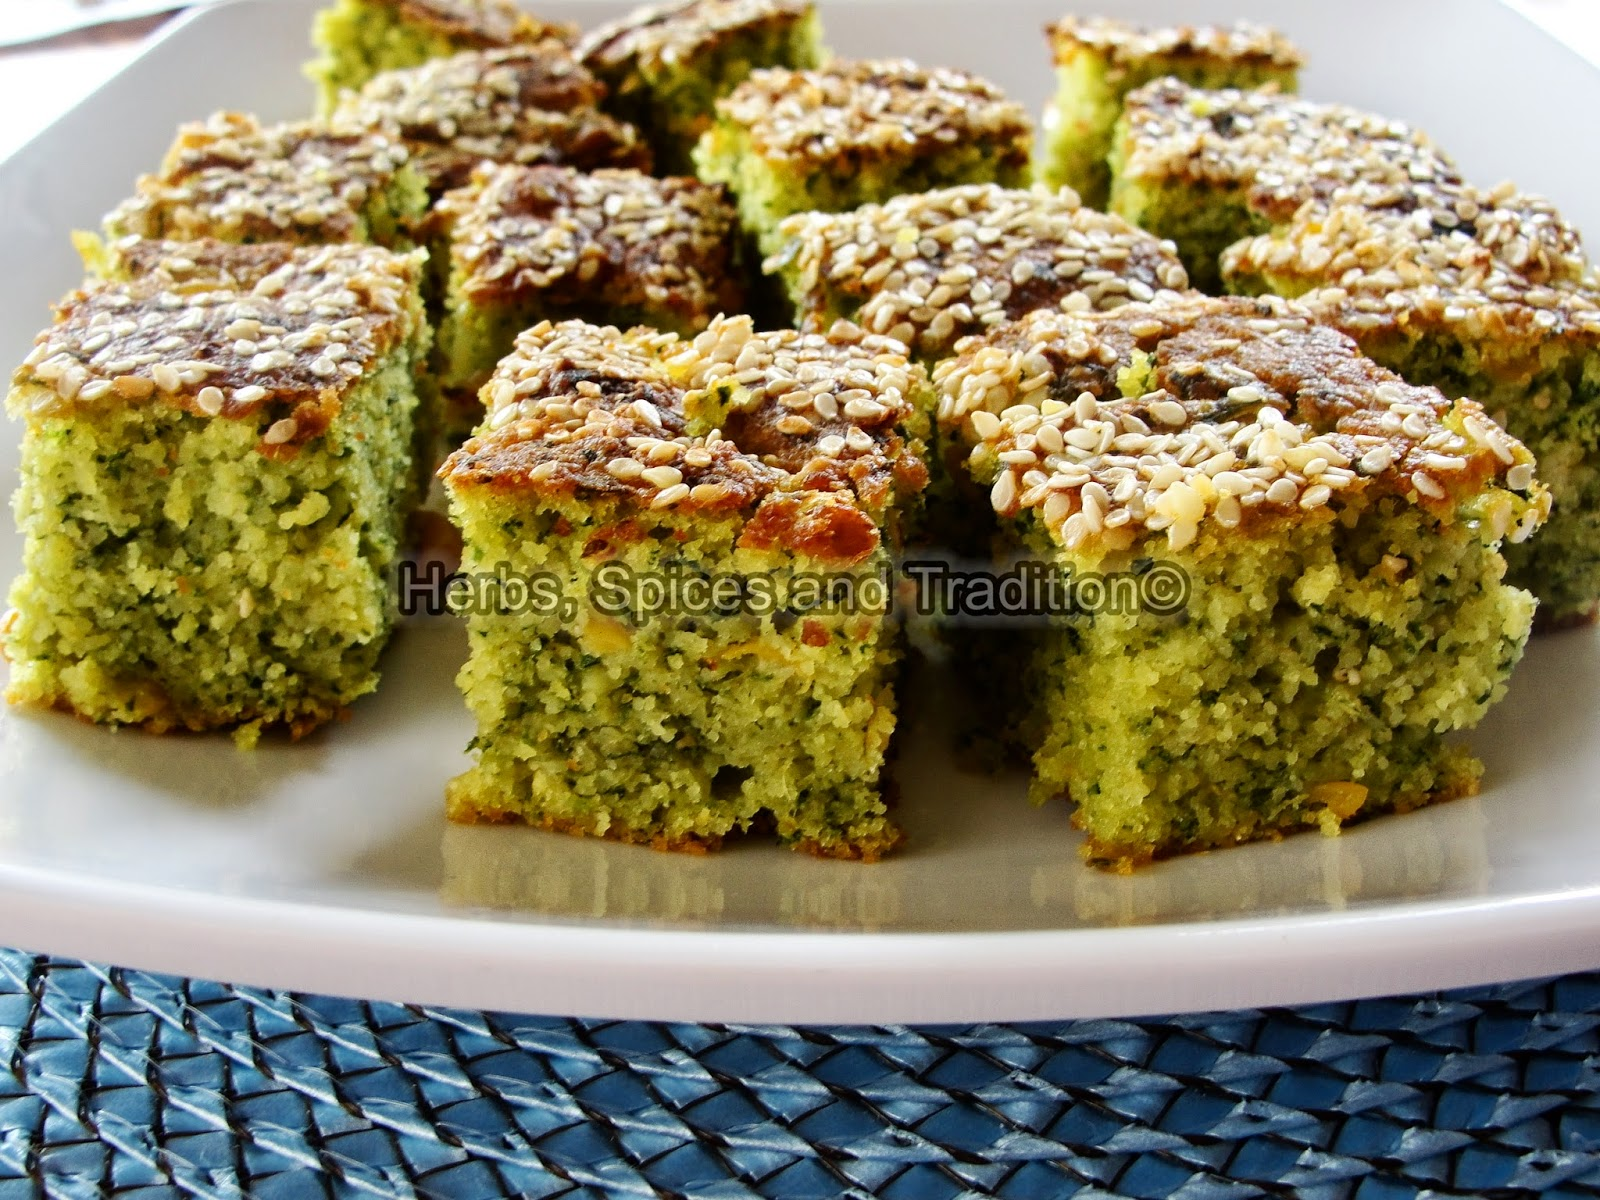 Herbs spices and tradition savoury baked cake fbc forumfinder Image collections